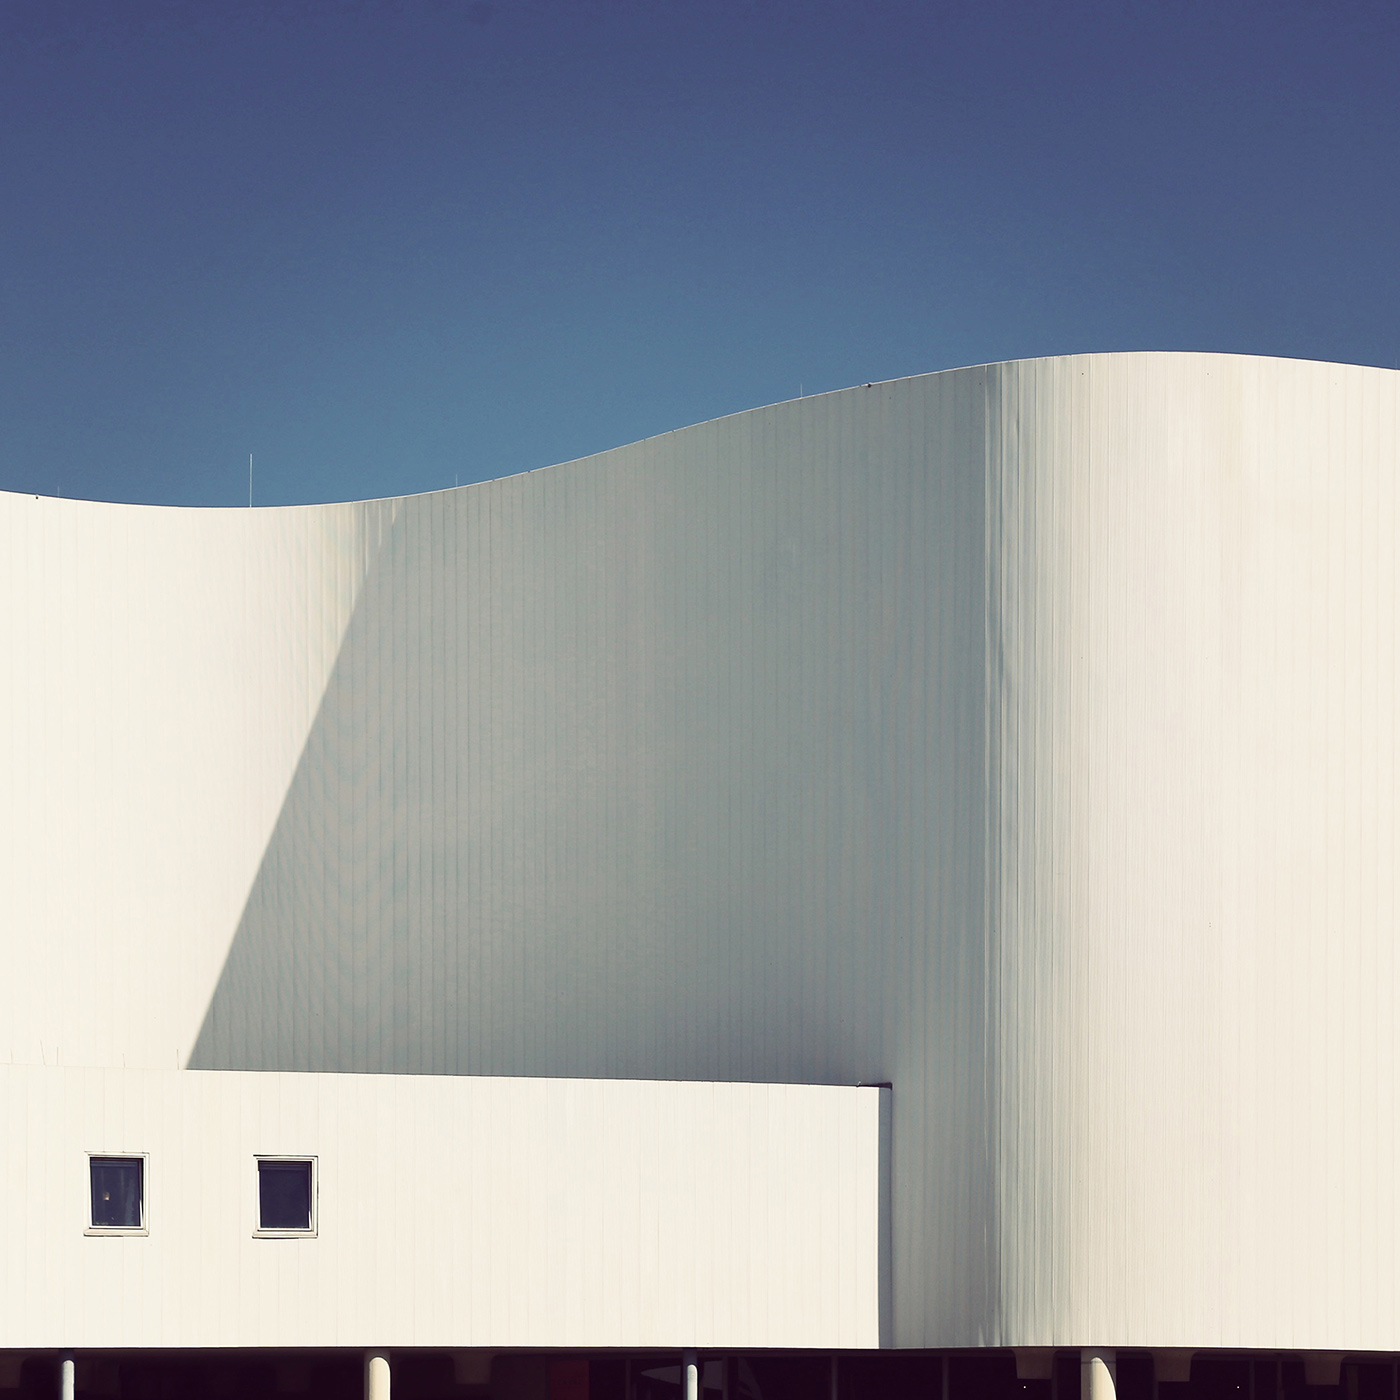 Architecture Photography Series summer on behance